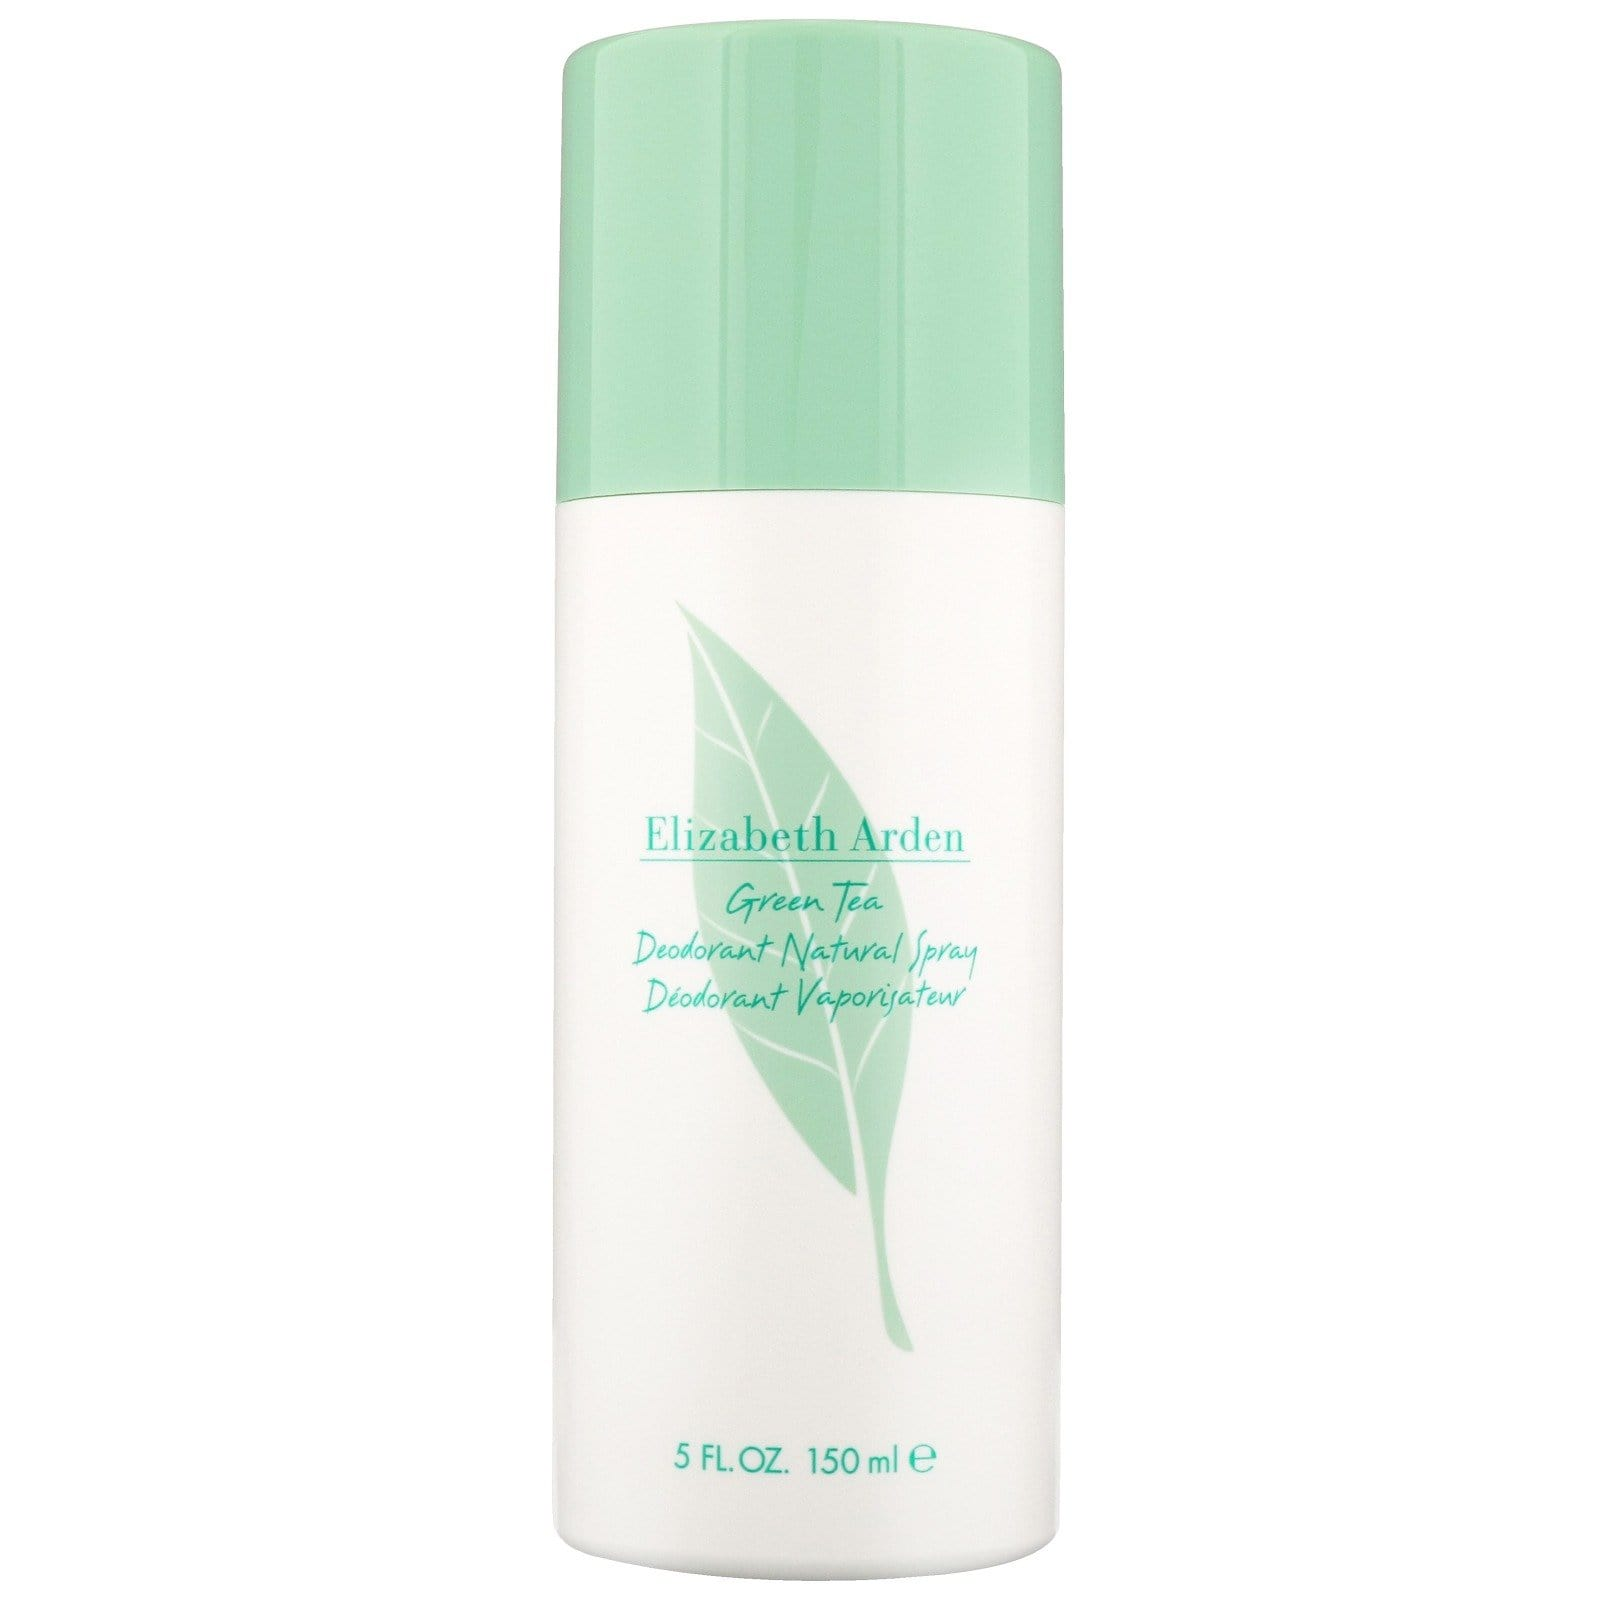 Elizabeth Arden Green Tea 150ml Deodorant Spray